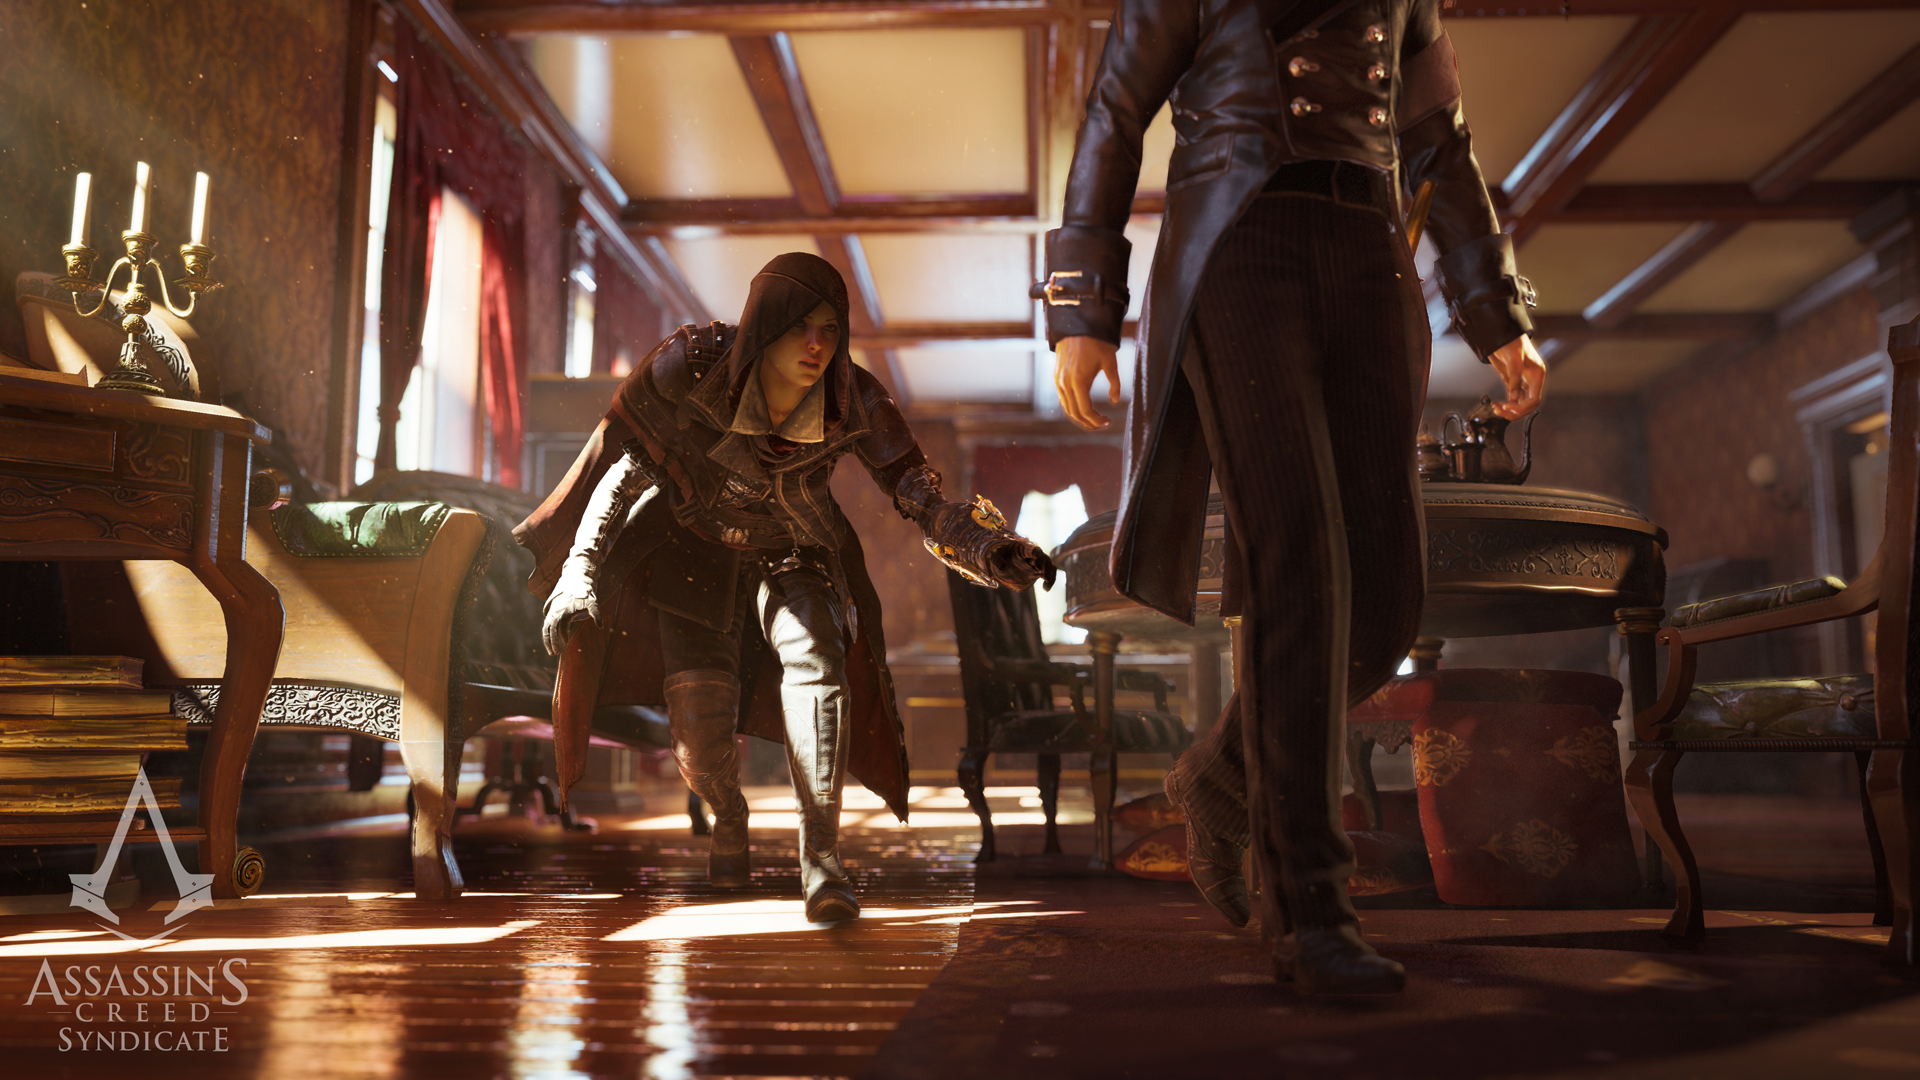 Visuel Discrétion Evie Frye Assassin's Creed Syndicate